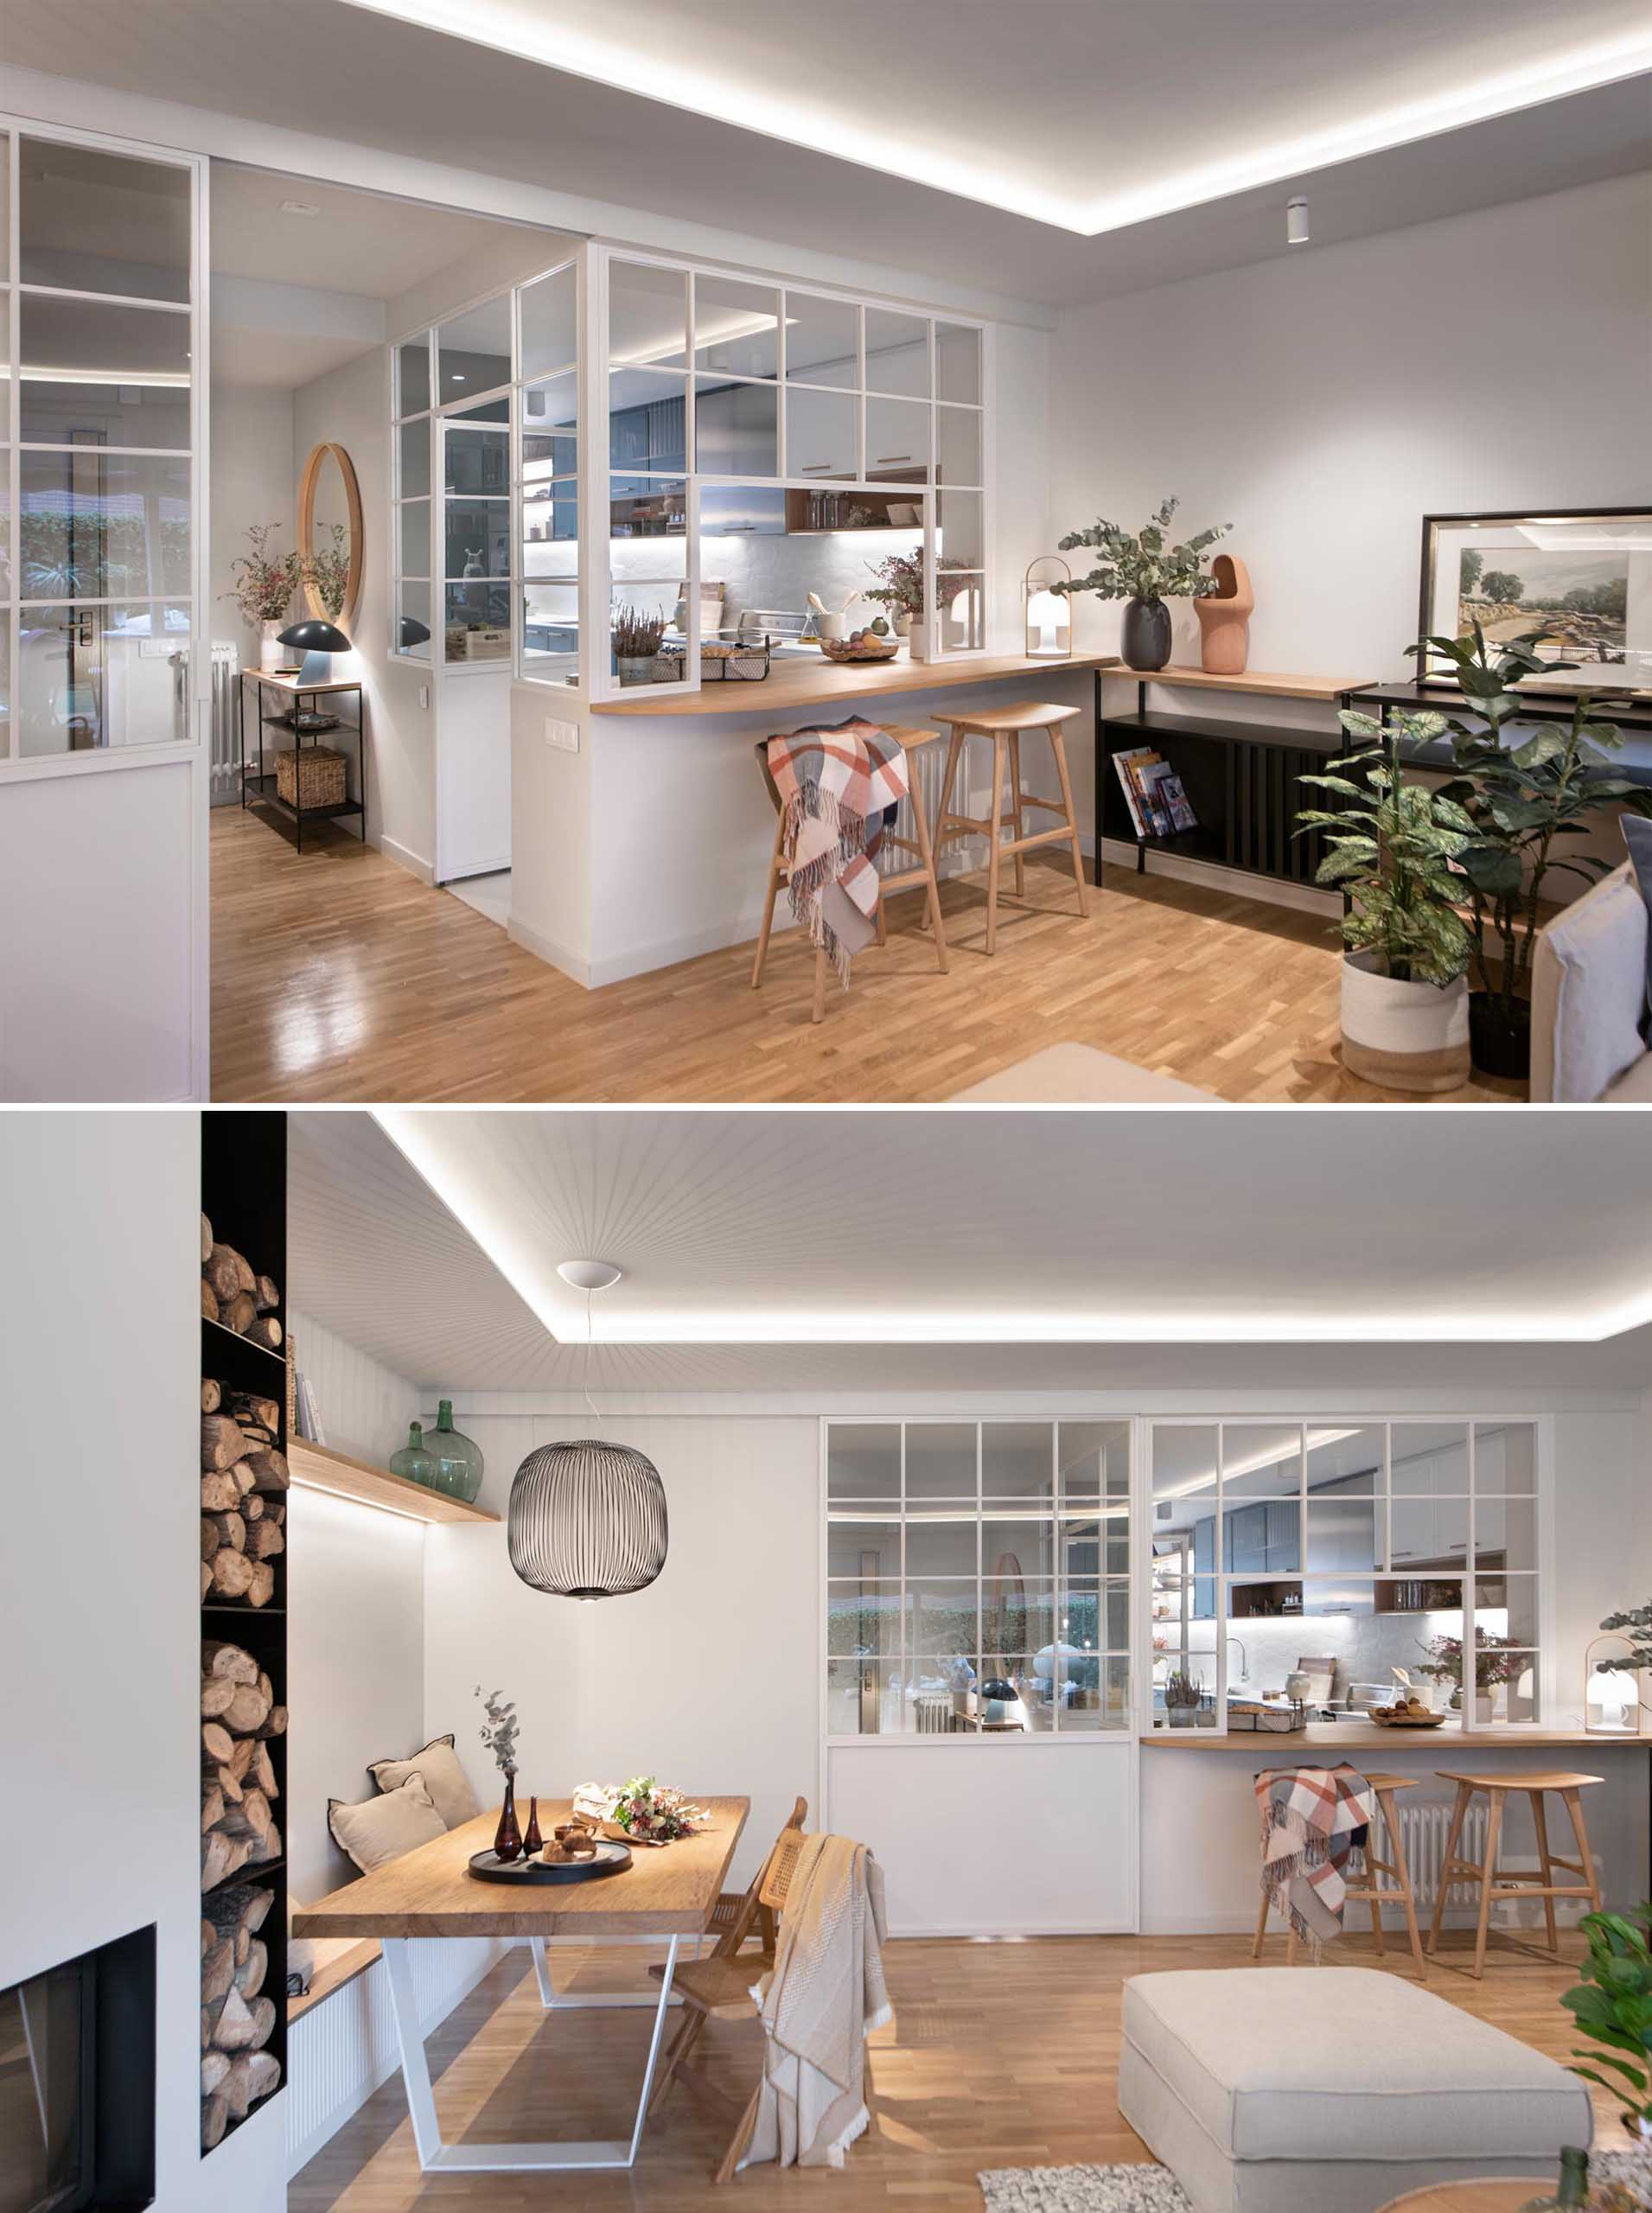 Separating the kitchen from the open plan living room and dining area is a sliding glass door that matches the white window frames of the kitchen walls. There's also a pass-through window with a wood countertop that acts as a bar.